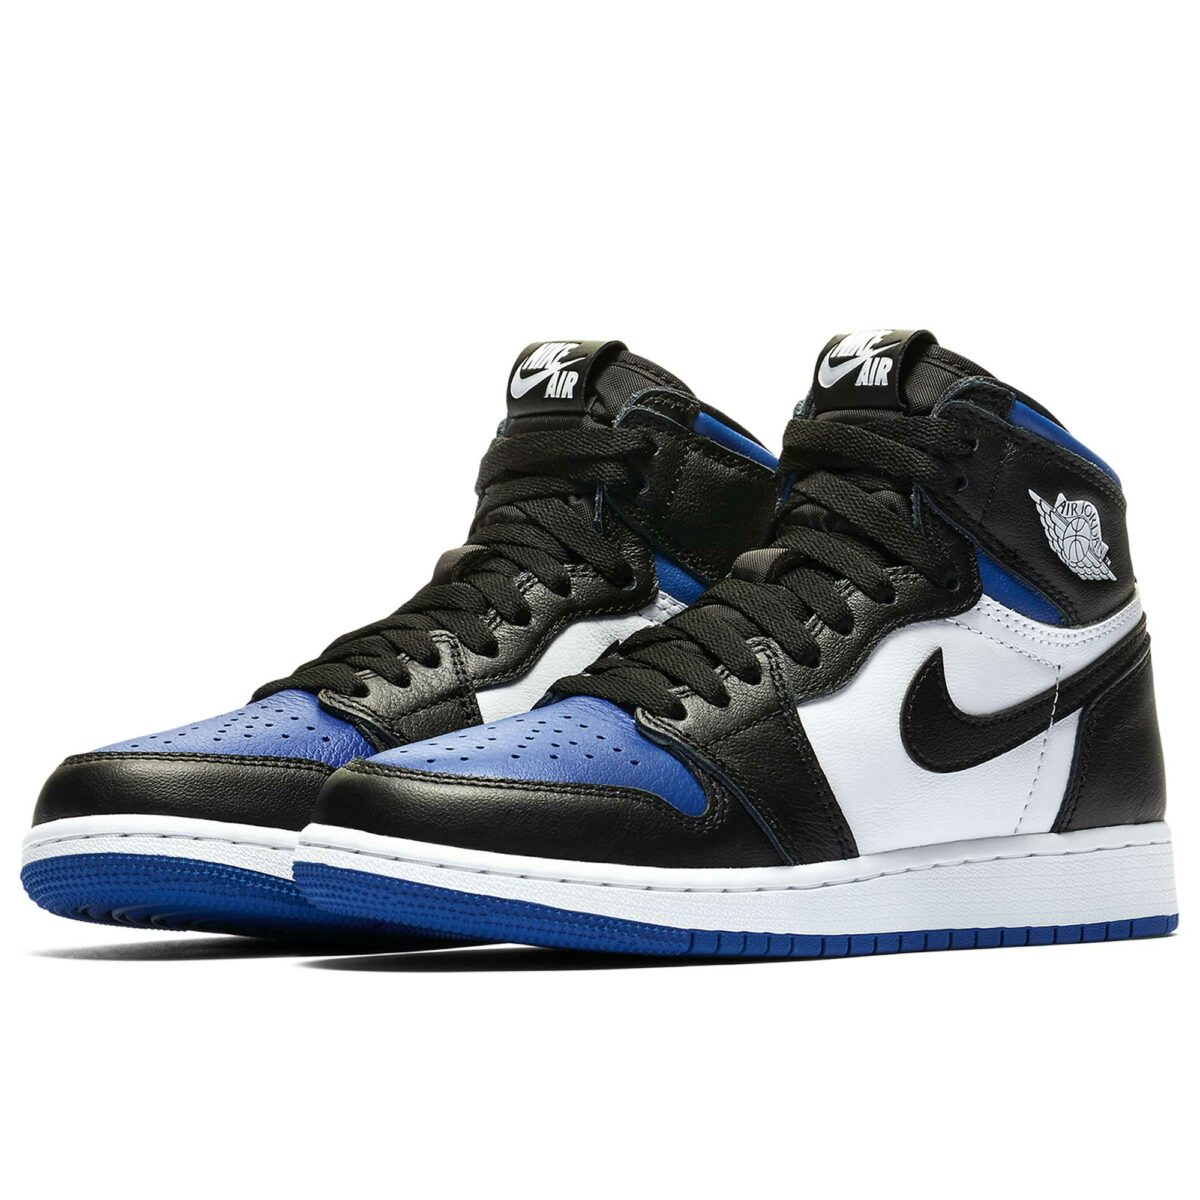 nike air Jordan 1 retro high og gs royal toe 575441_041 купить